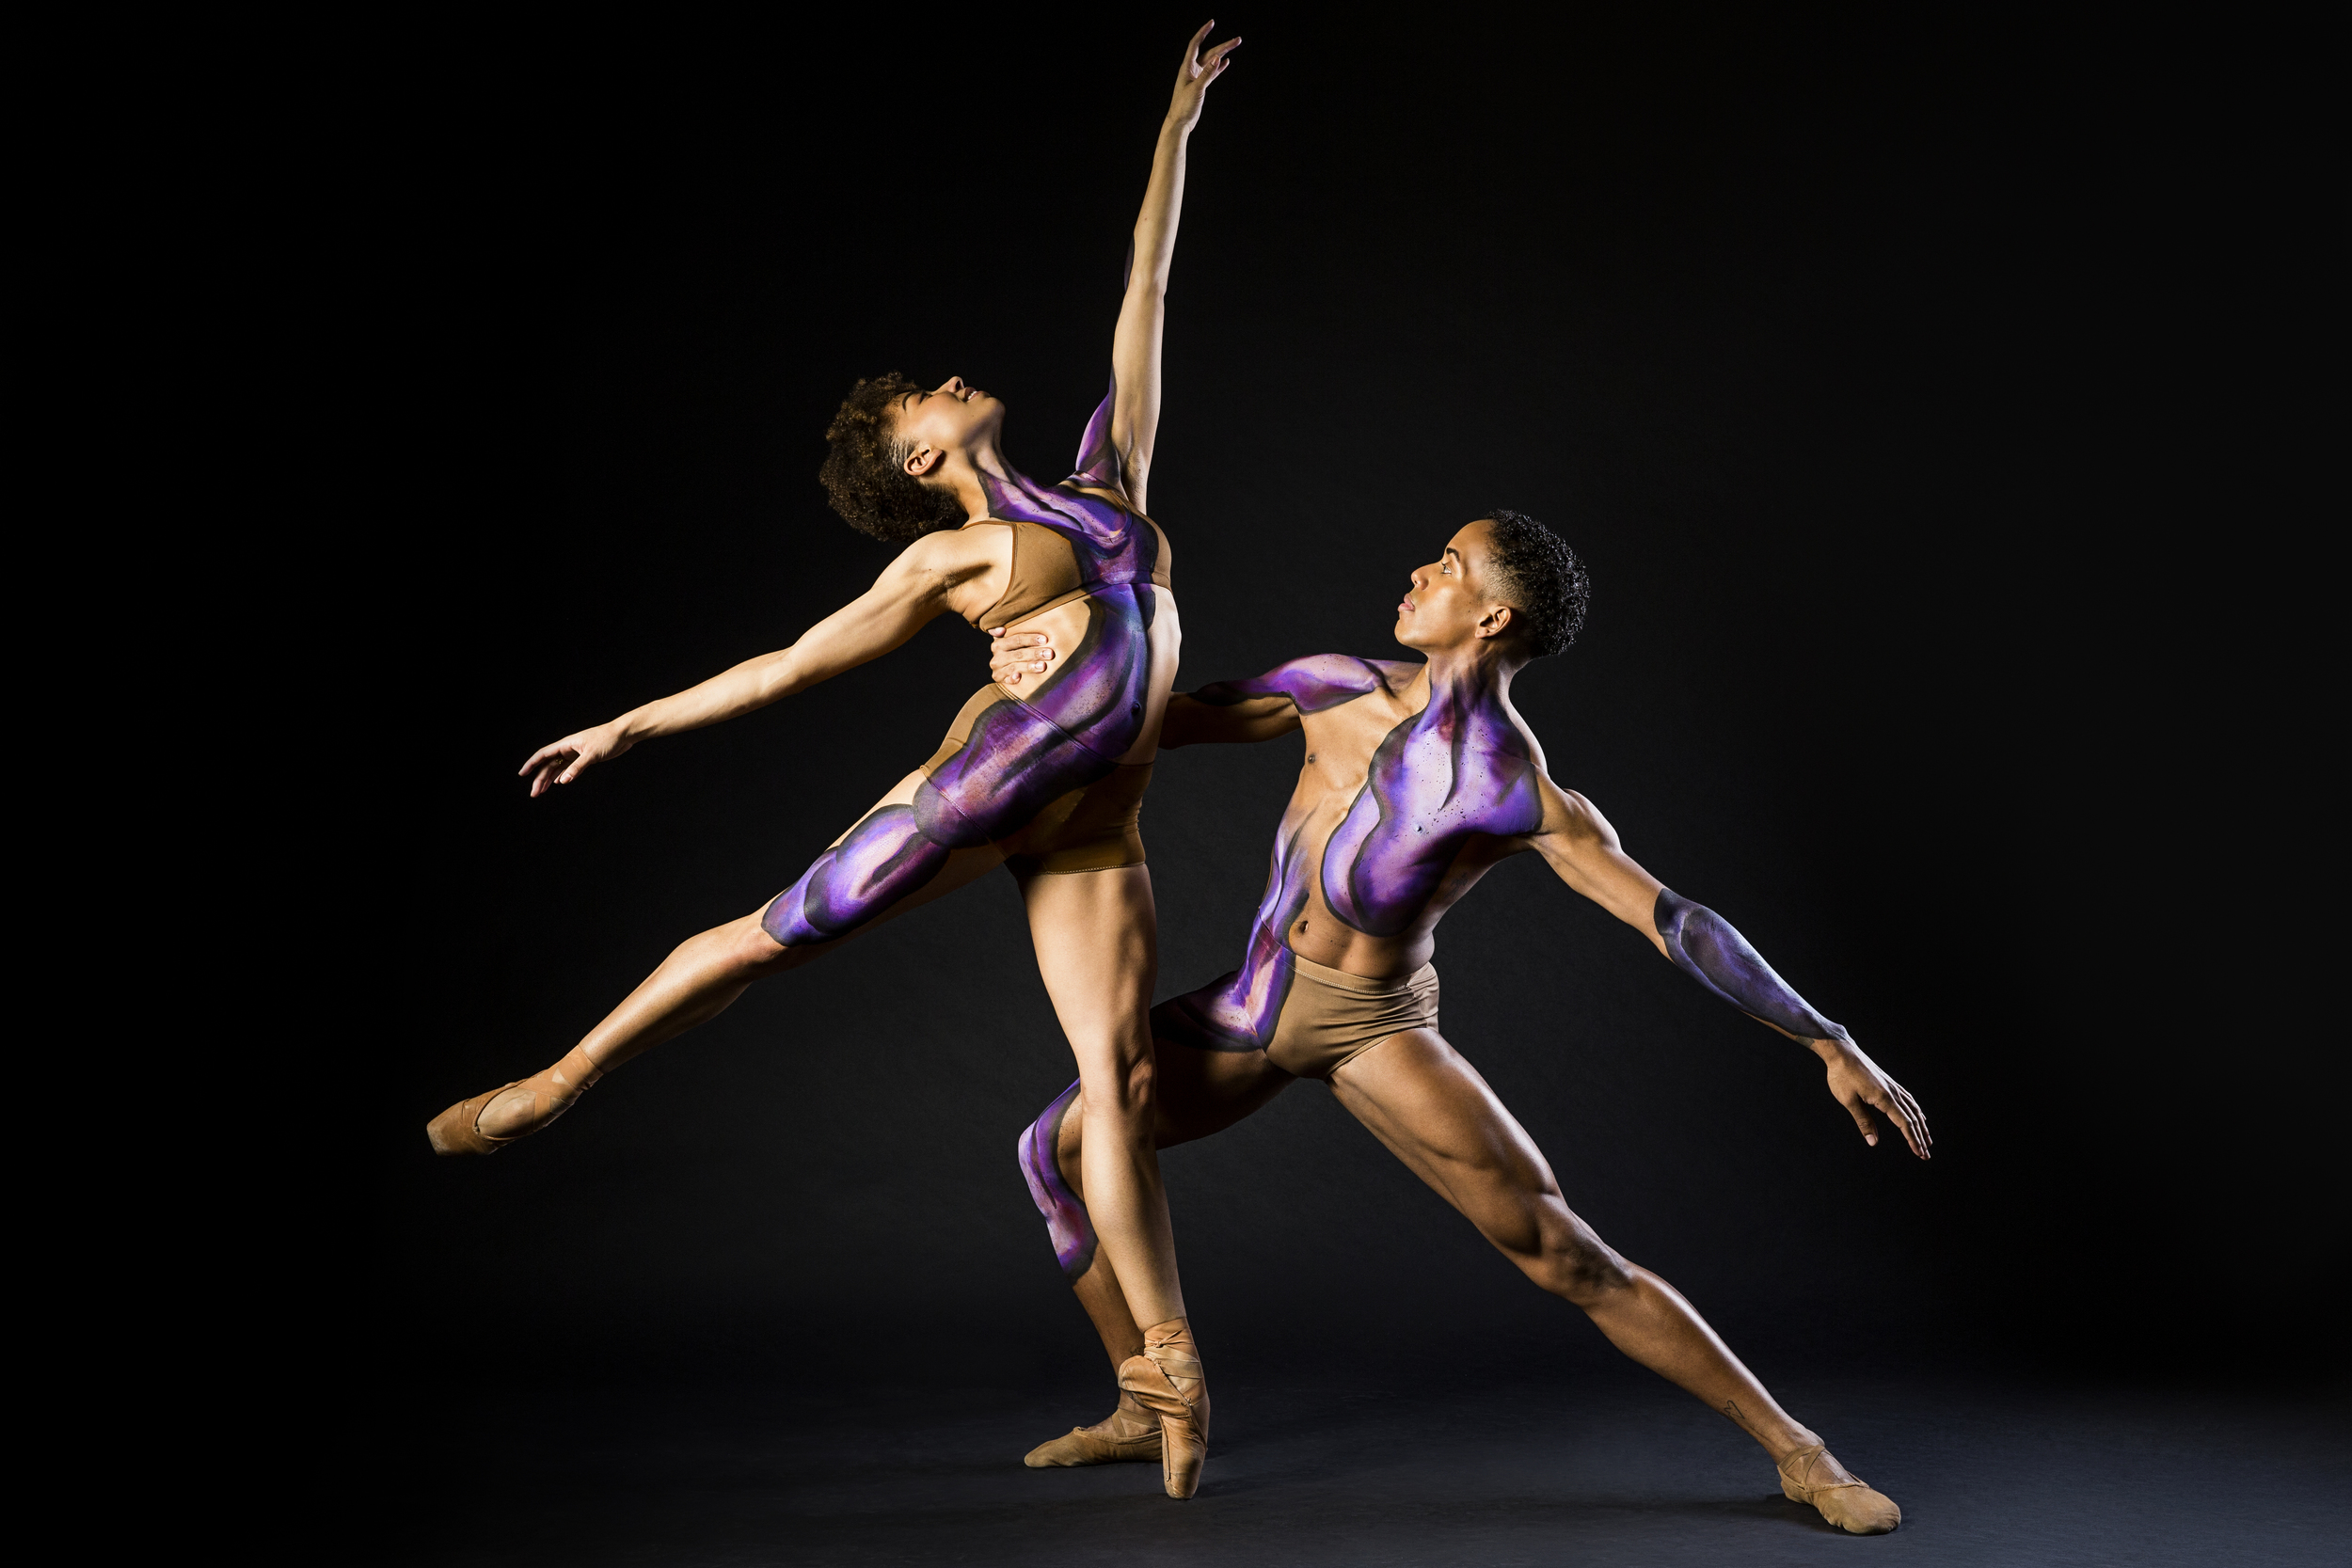 Stephanie Williams (Dance Theatre of Harlem) and Daniel Harder (Alvin Ailey American Dance Theater)